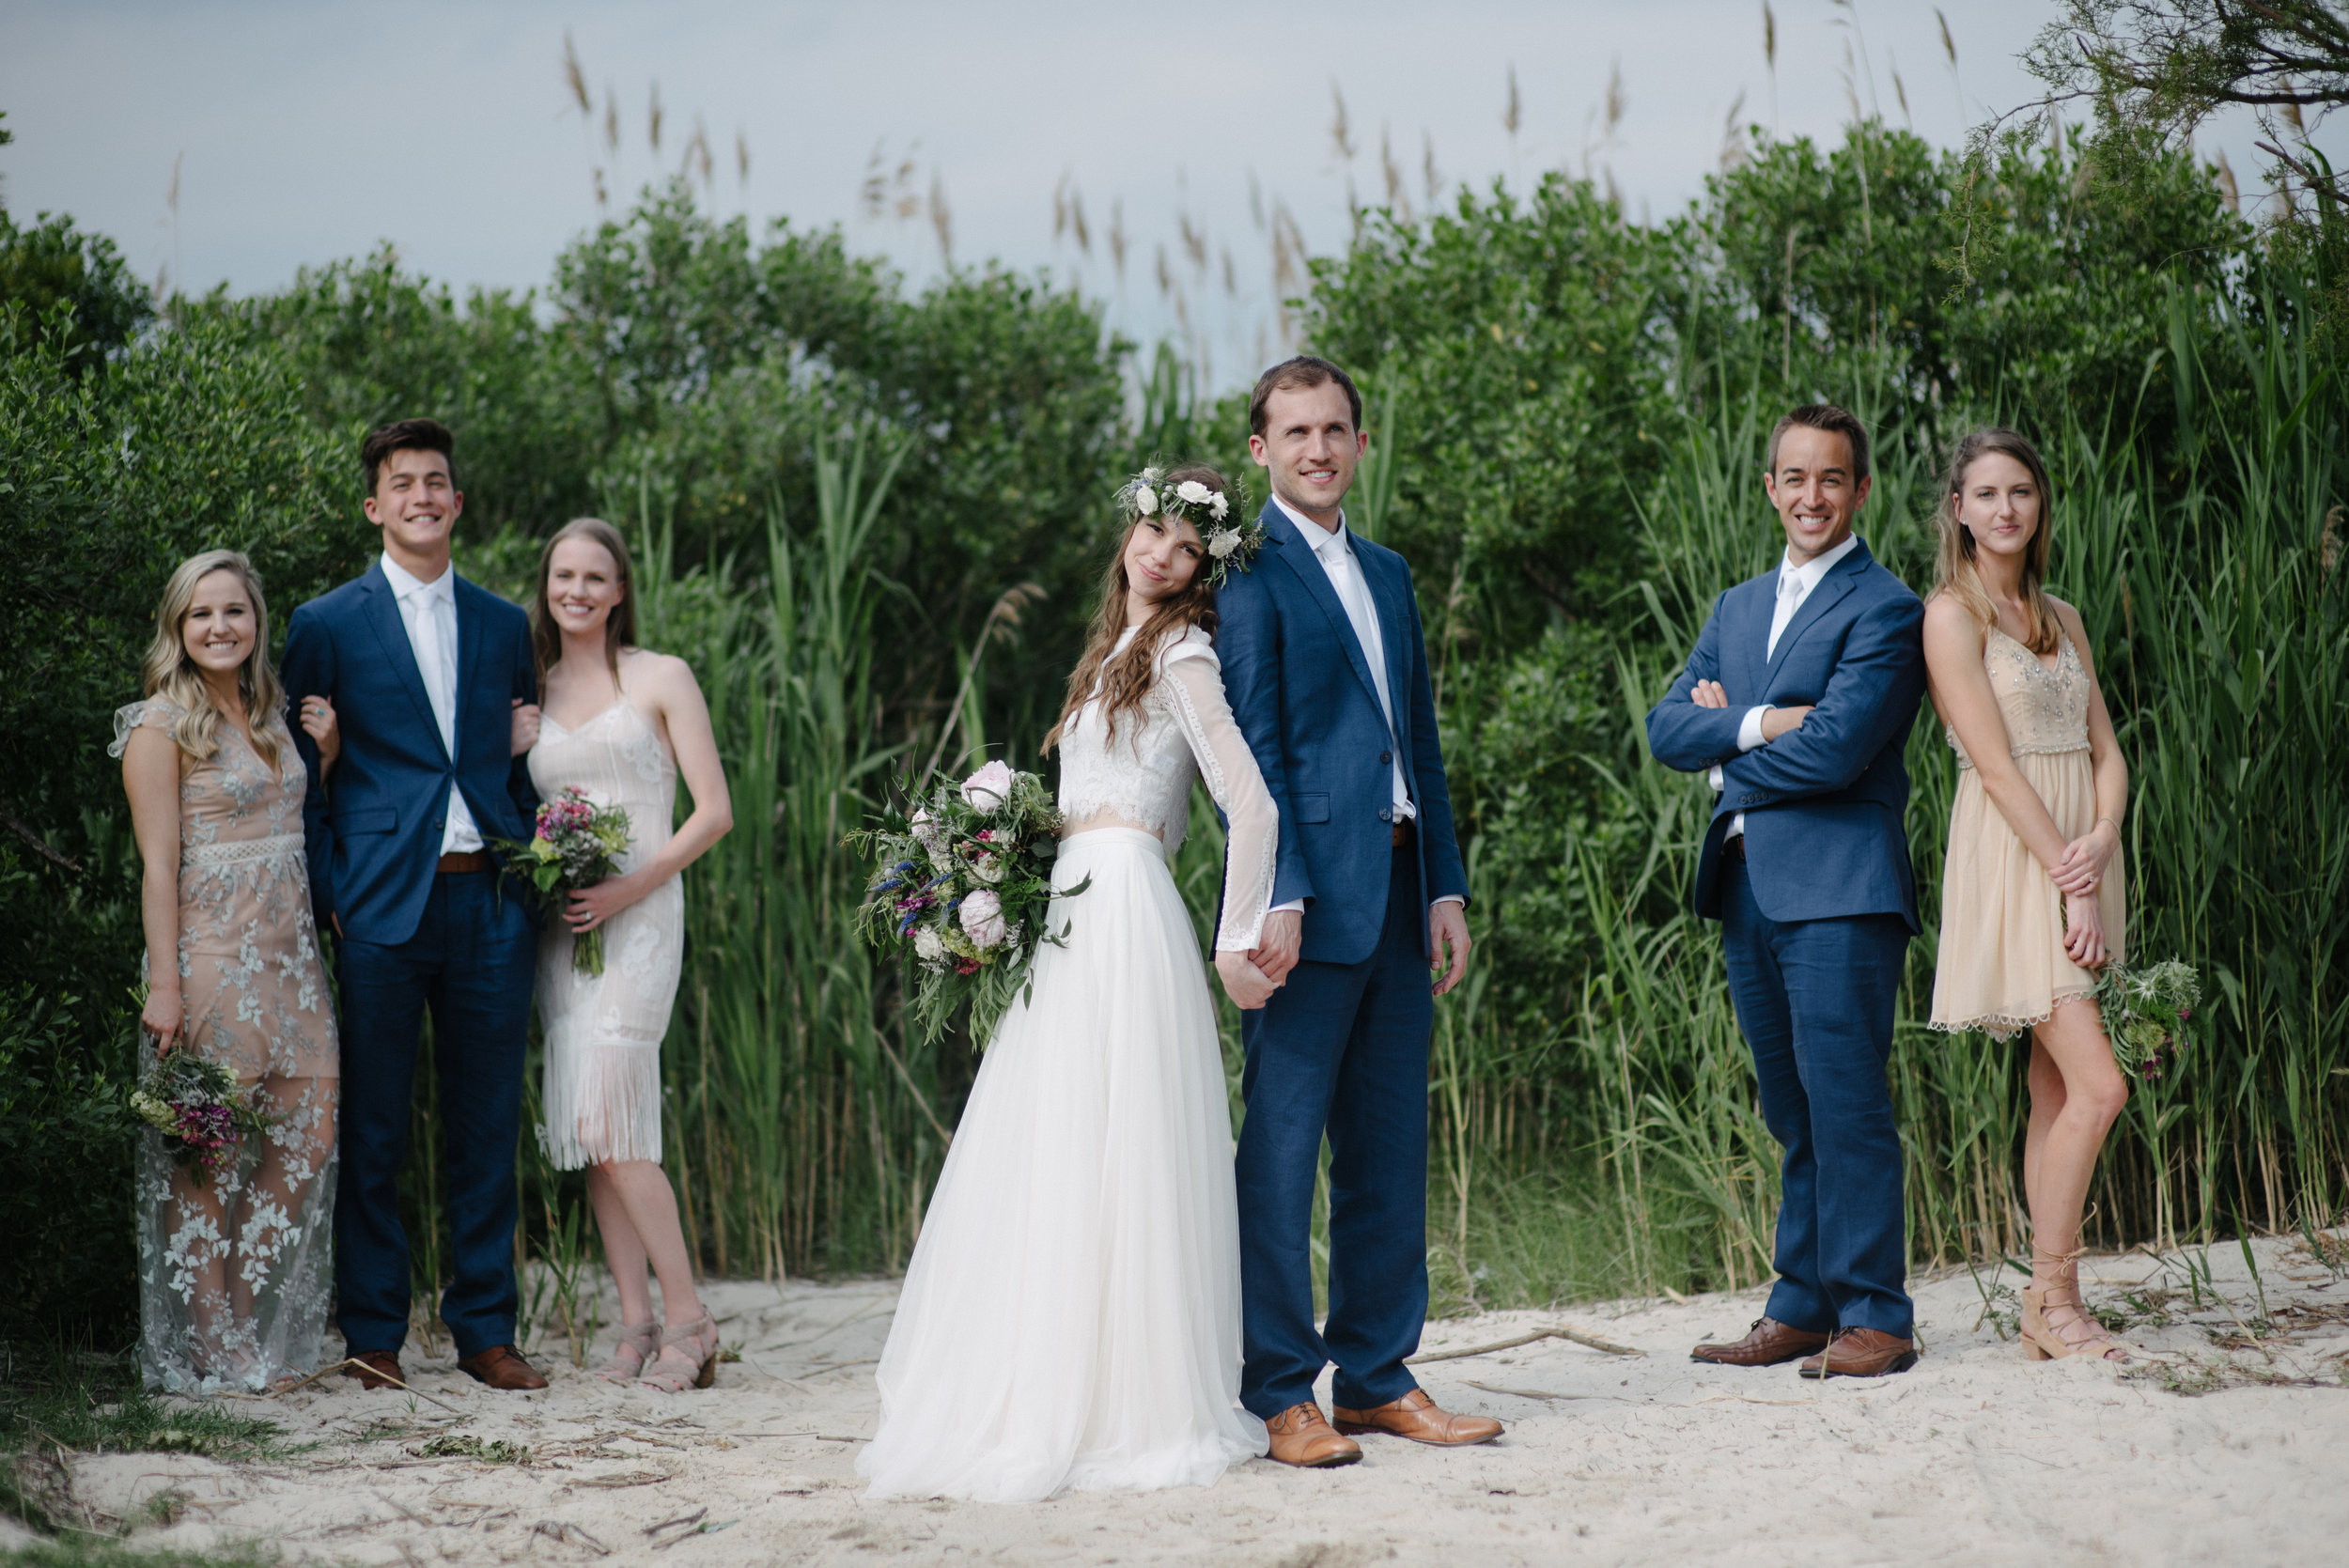 bridal-party-pictures-9.jpg